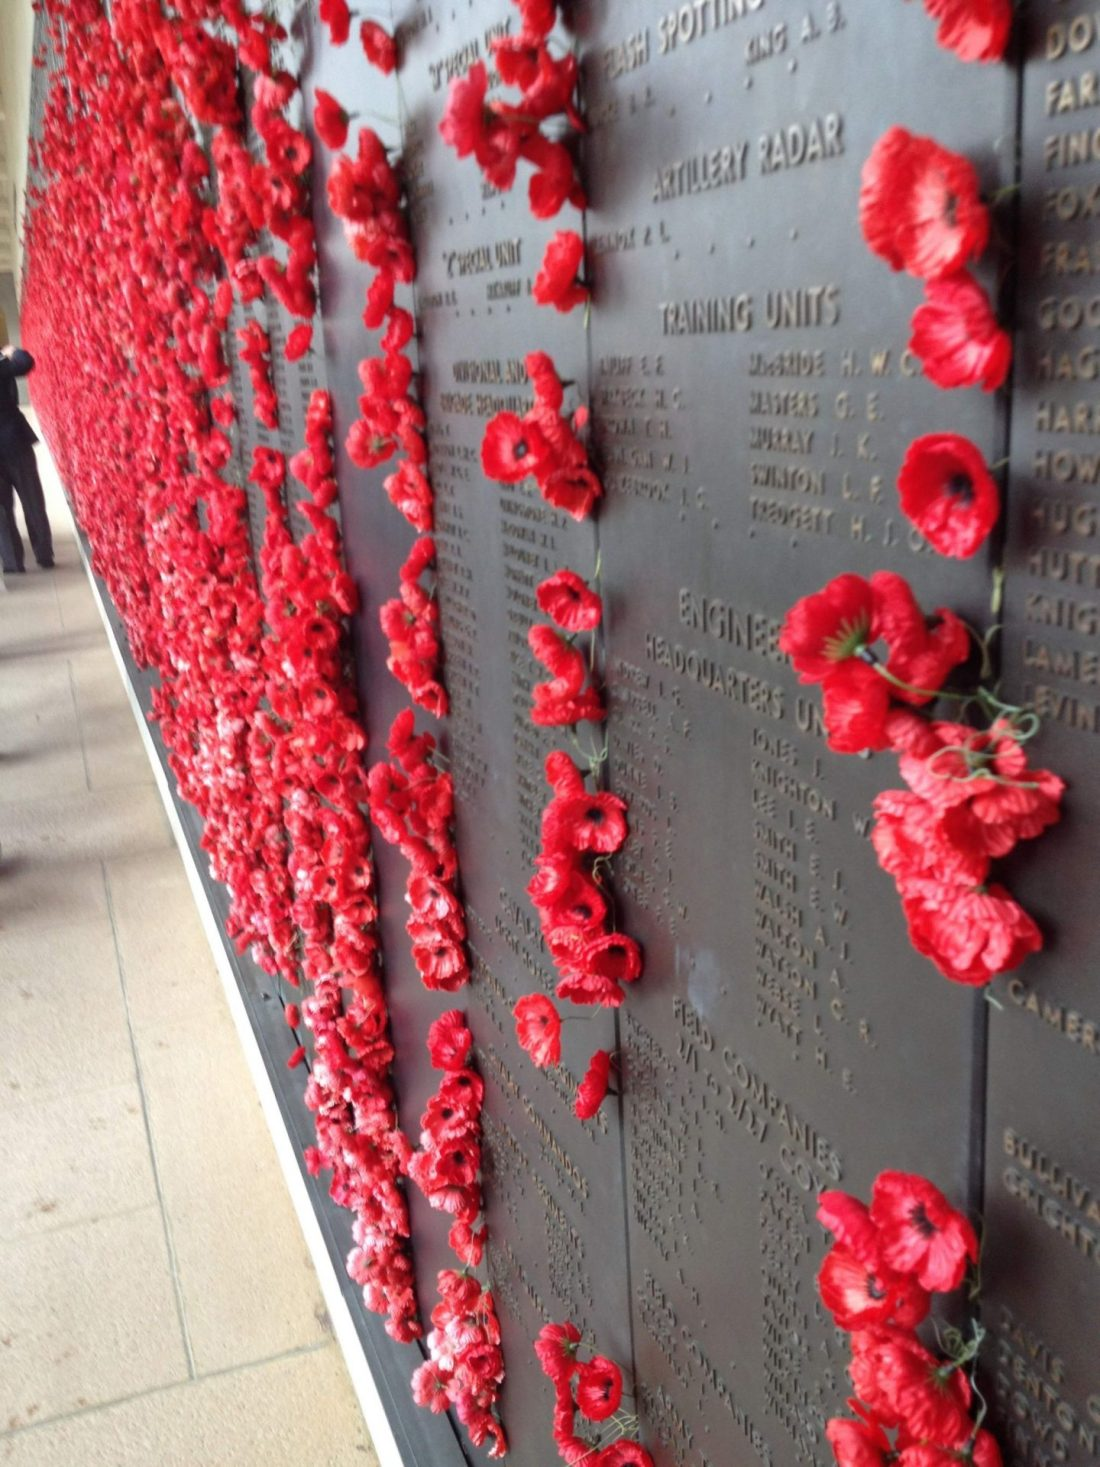 Wall of poppies at the Australian War Memorial in Canberra